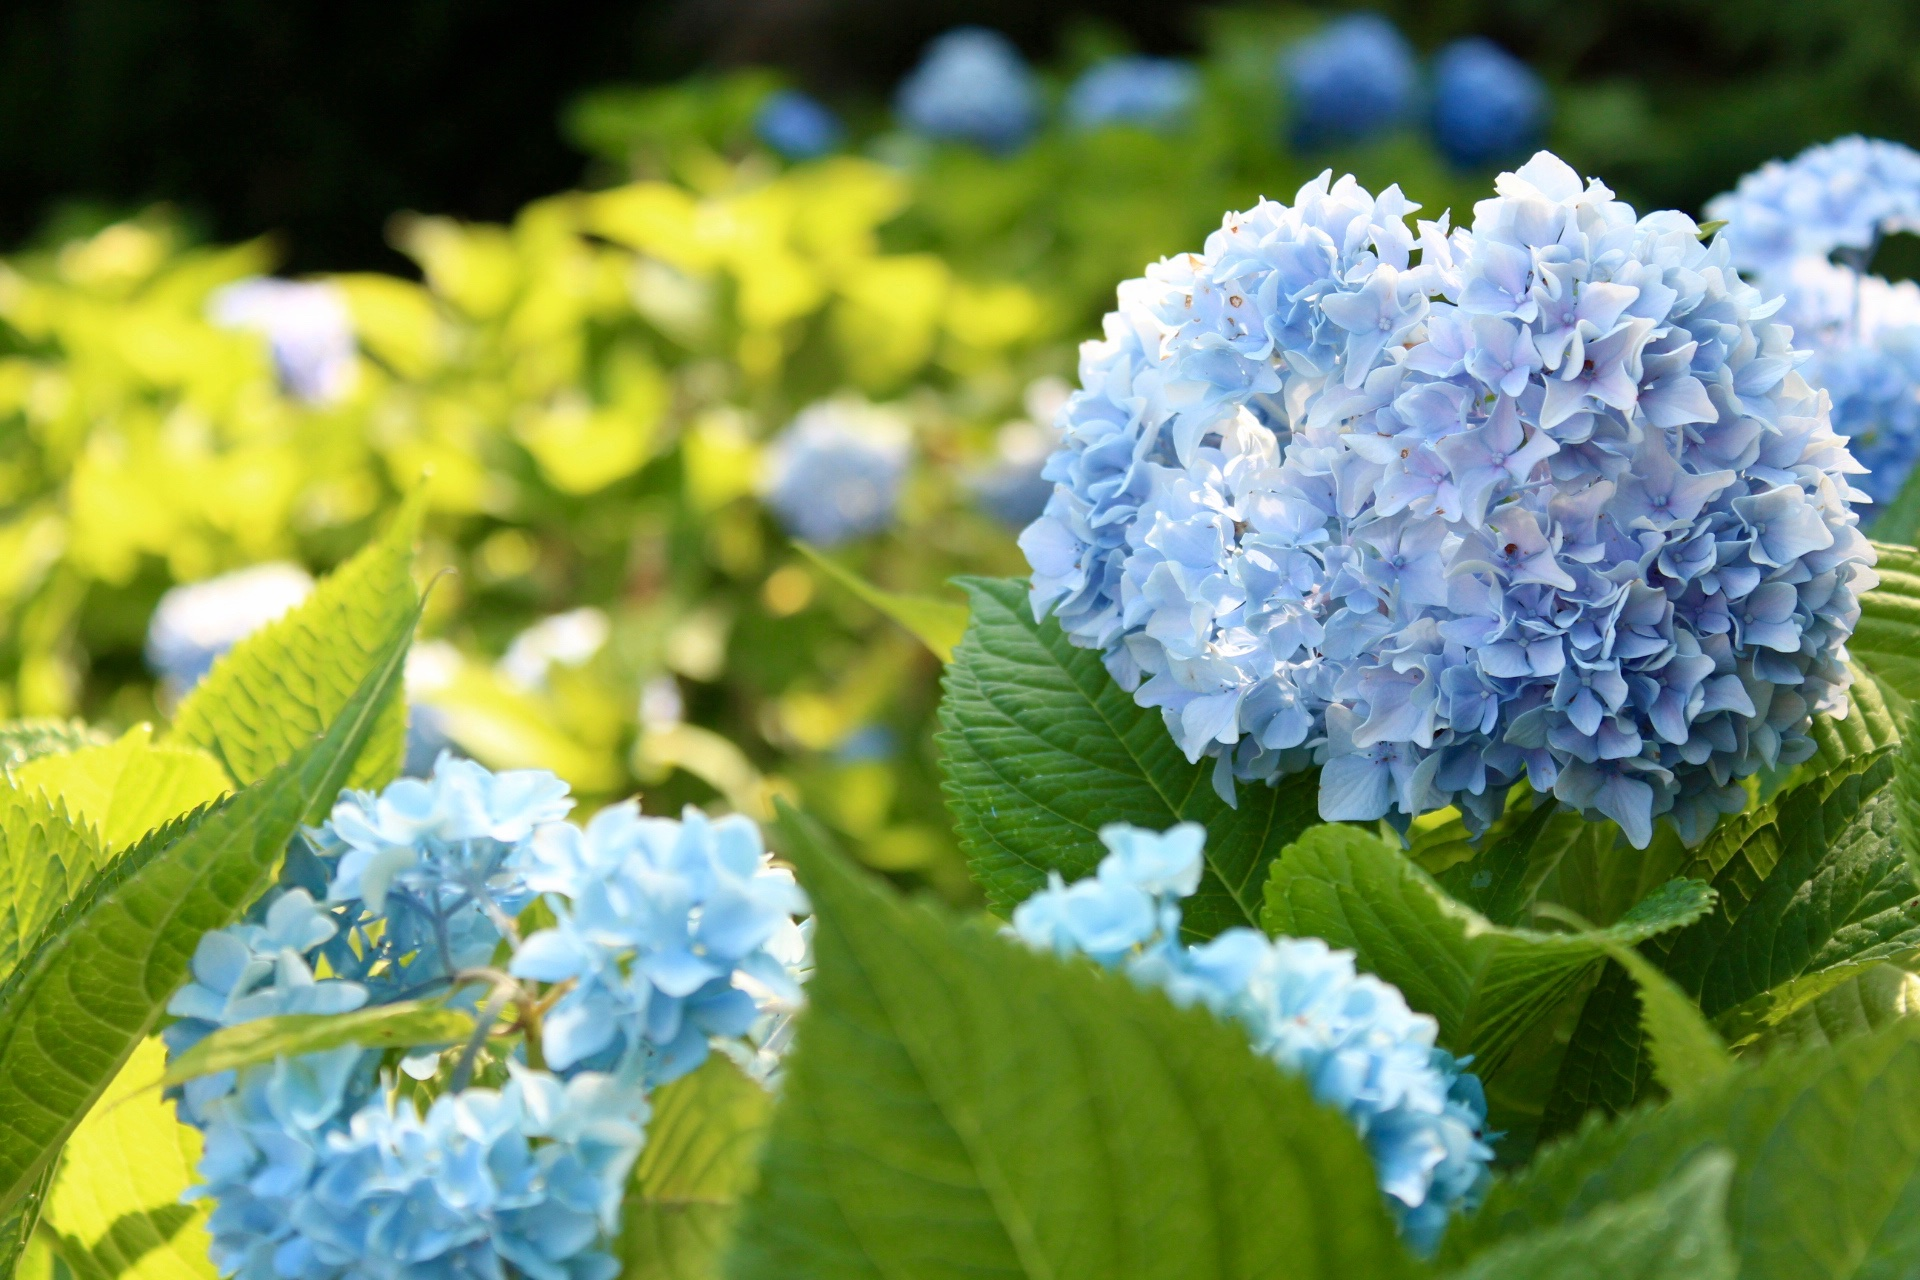 Chatham Home Blue Hydrangeas in Bloom